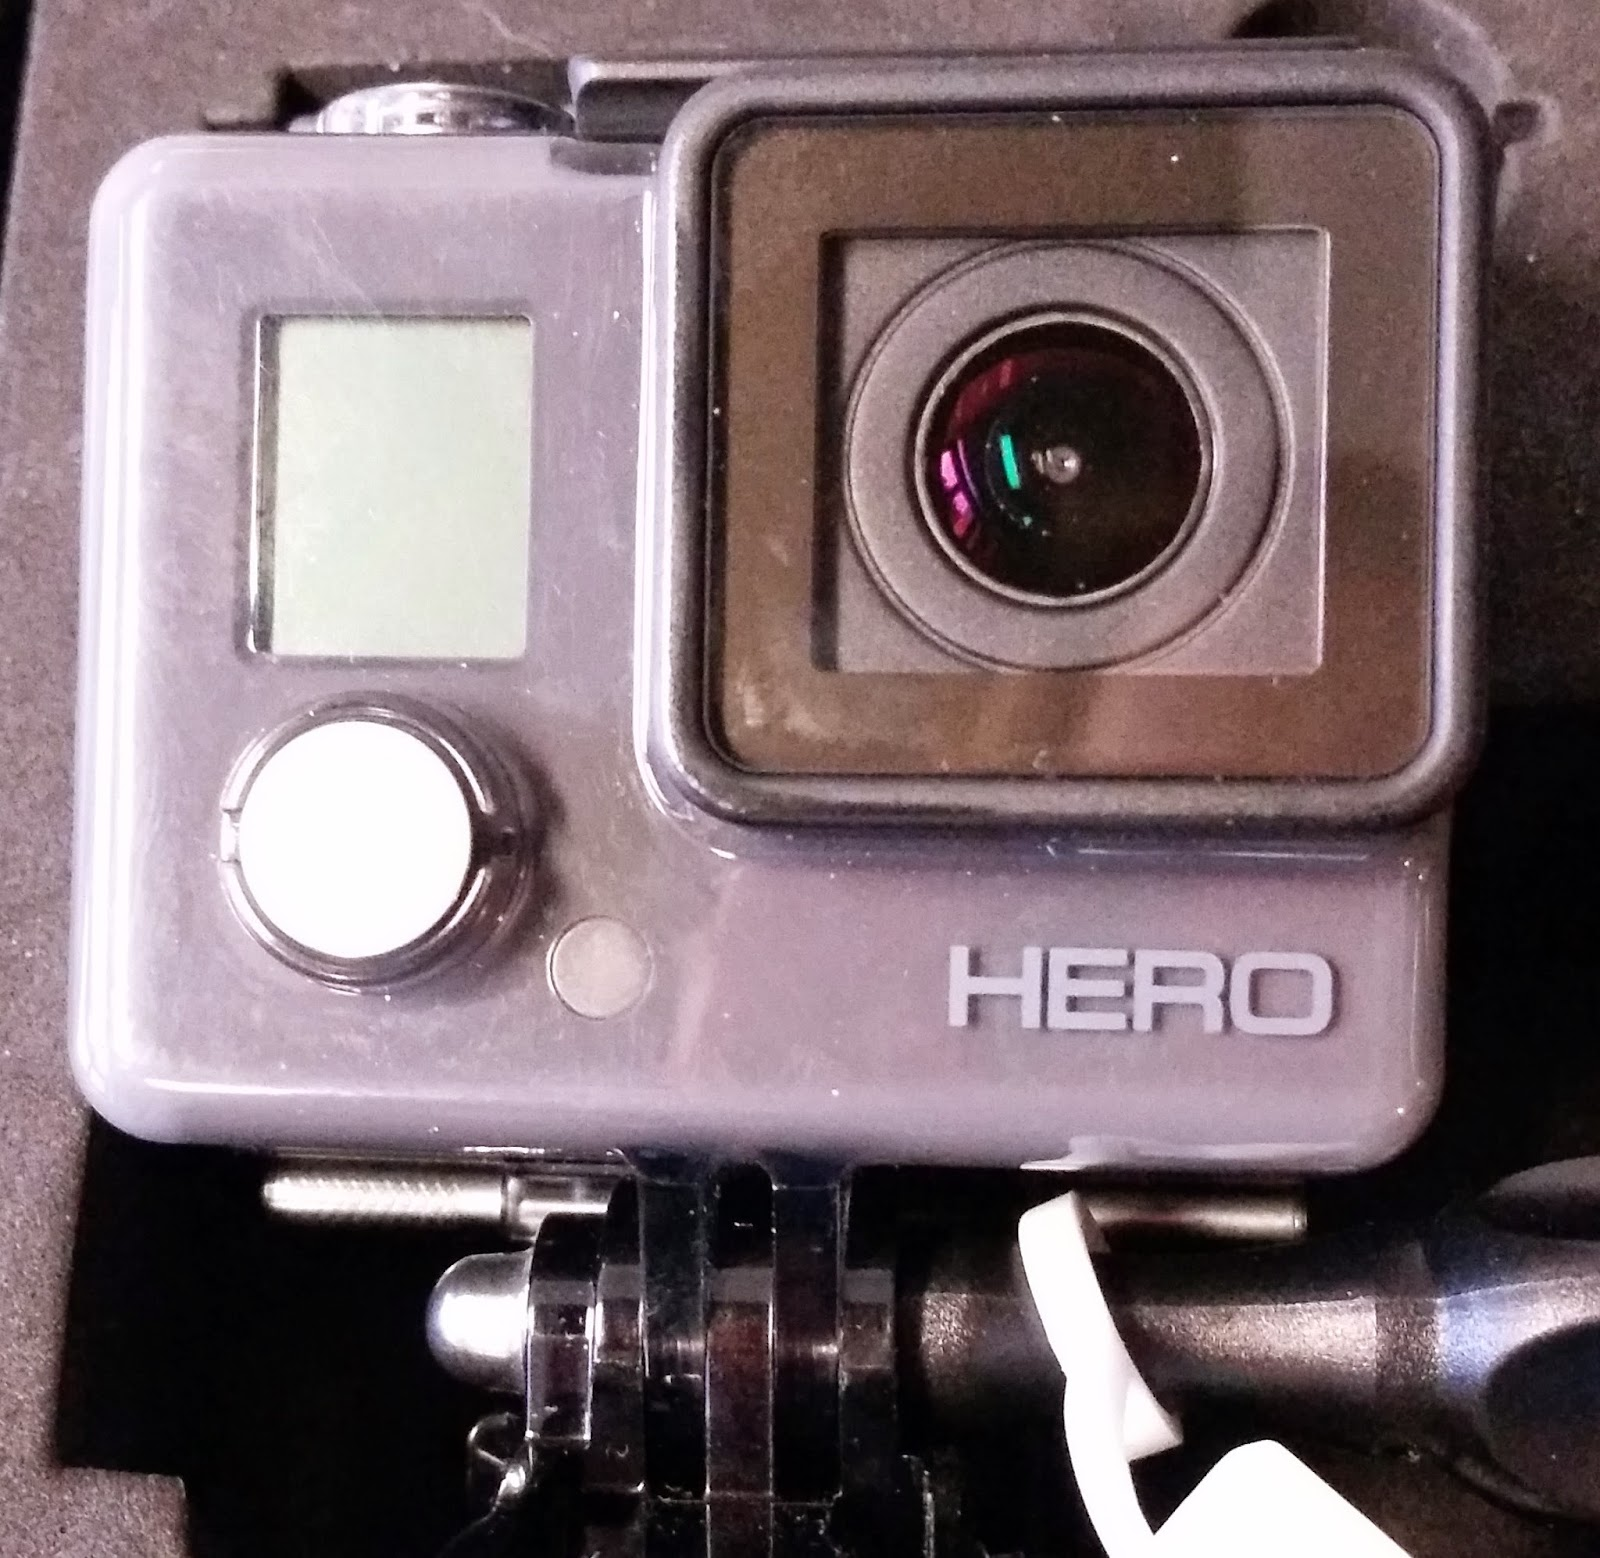 A Public Universe Action Cam Review Gopro Hero Vs Clone Of Hd Camera While I Was Looking For Less Expensive Accessories Kept Seeing Clones The Sjcam Makes That Is Similar In Price To But Has Features